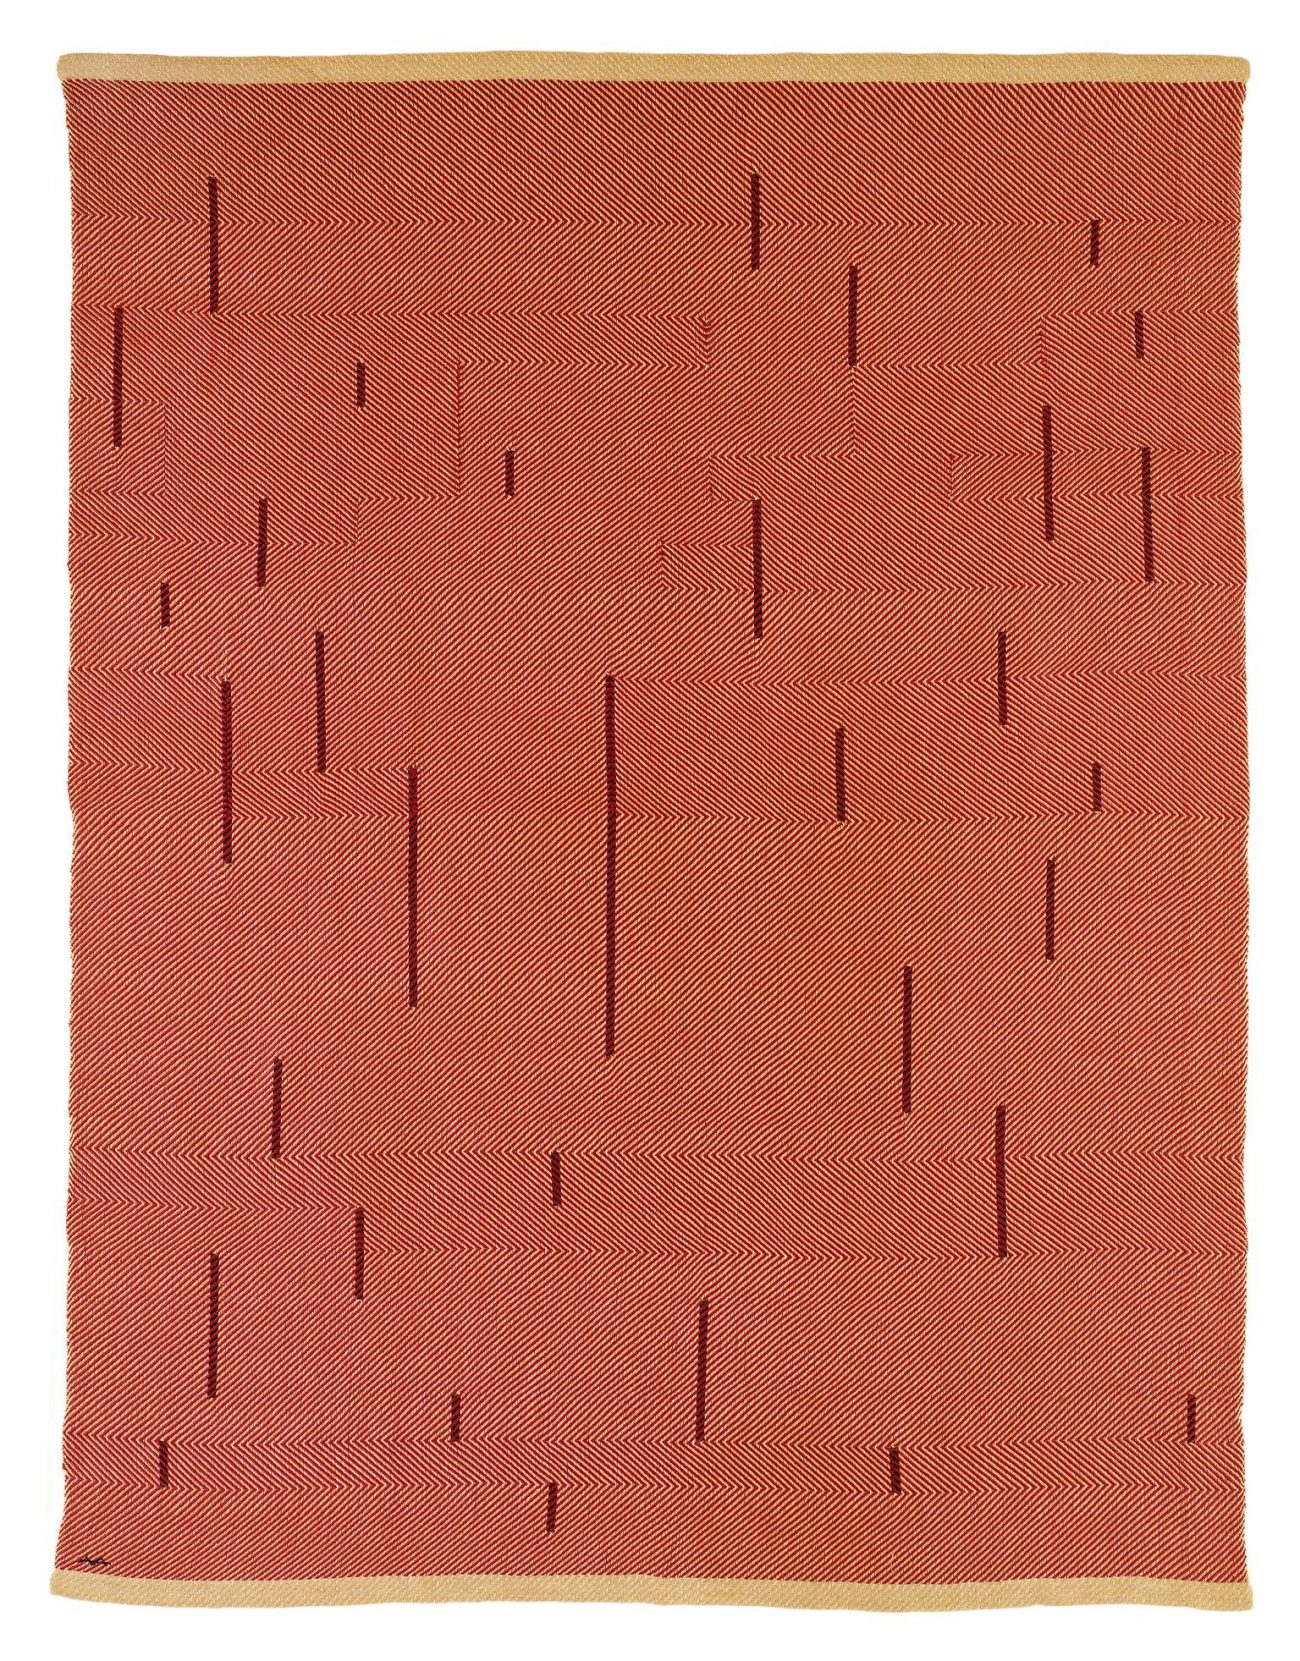 With Verticals,1946, katoen en linnen, 154,9 x 118,1 cm - foto The Josef and Anni Albers Foundation.